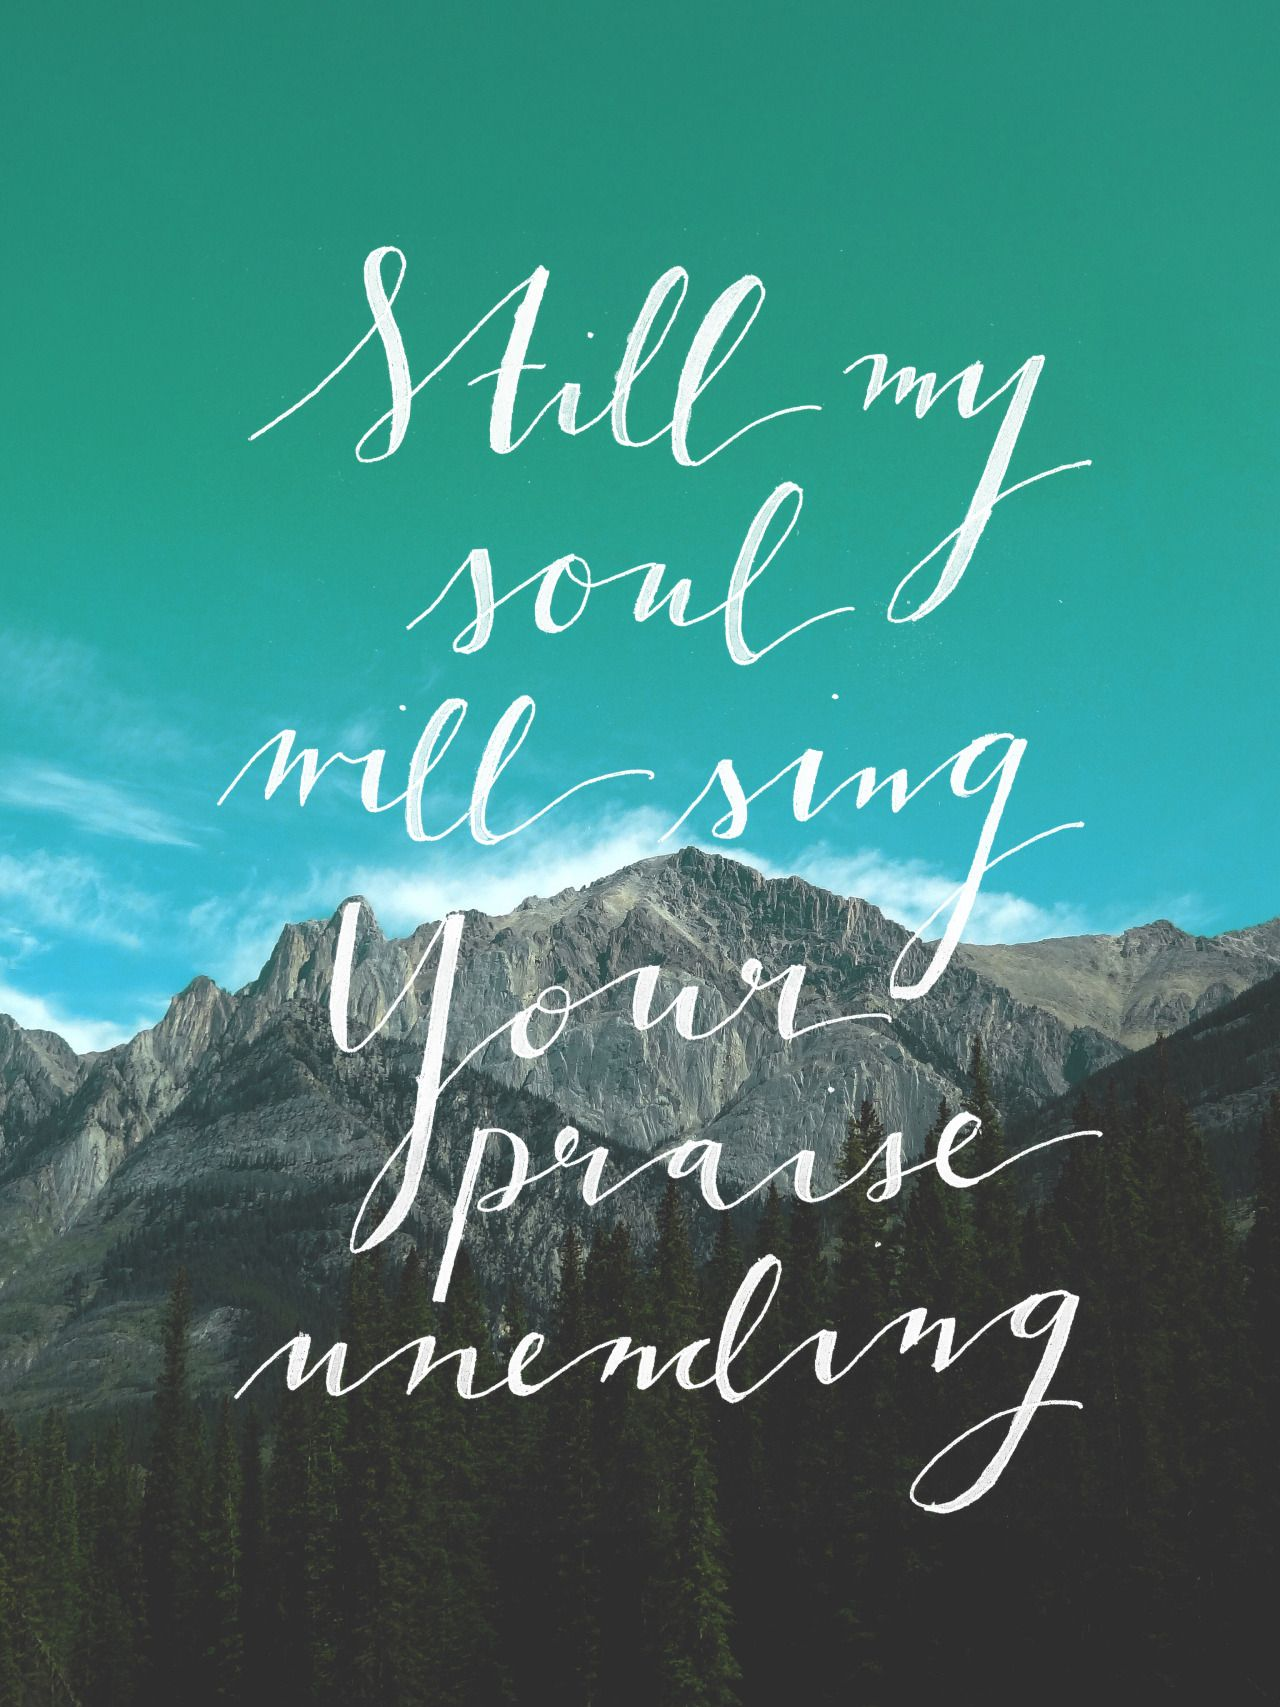 still my soul will sing Your praise unending  | Faith